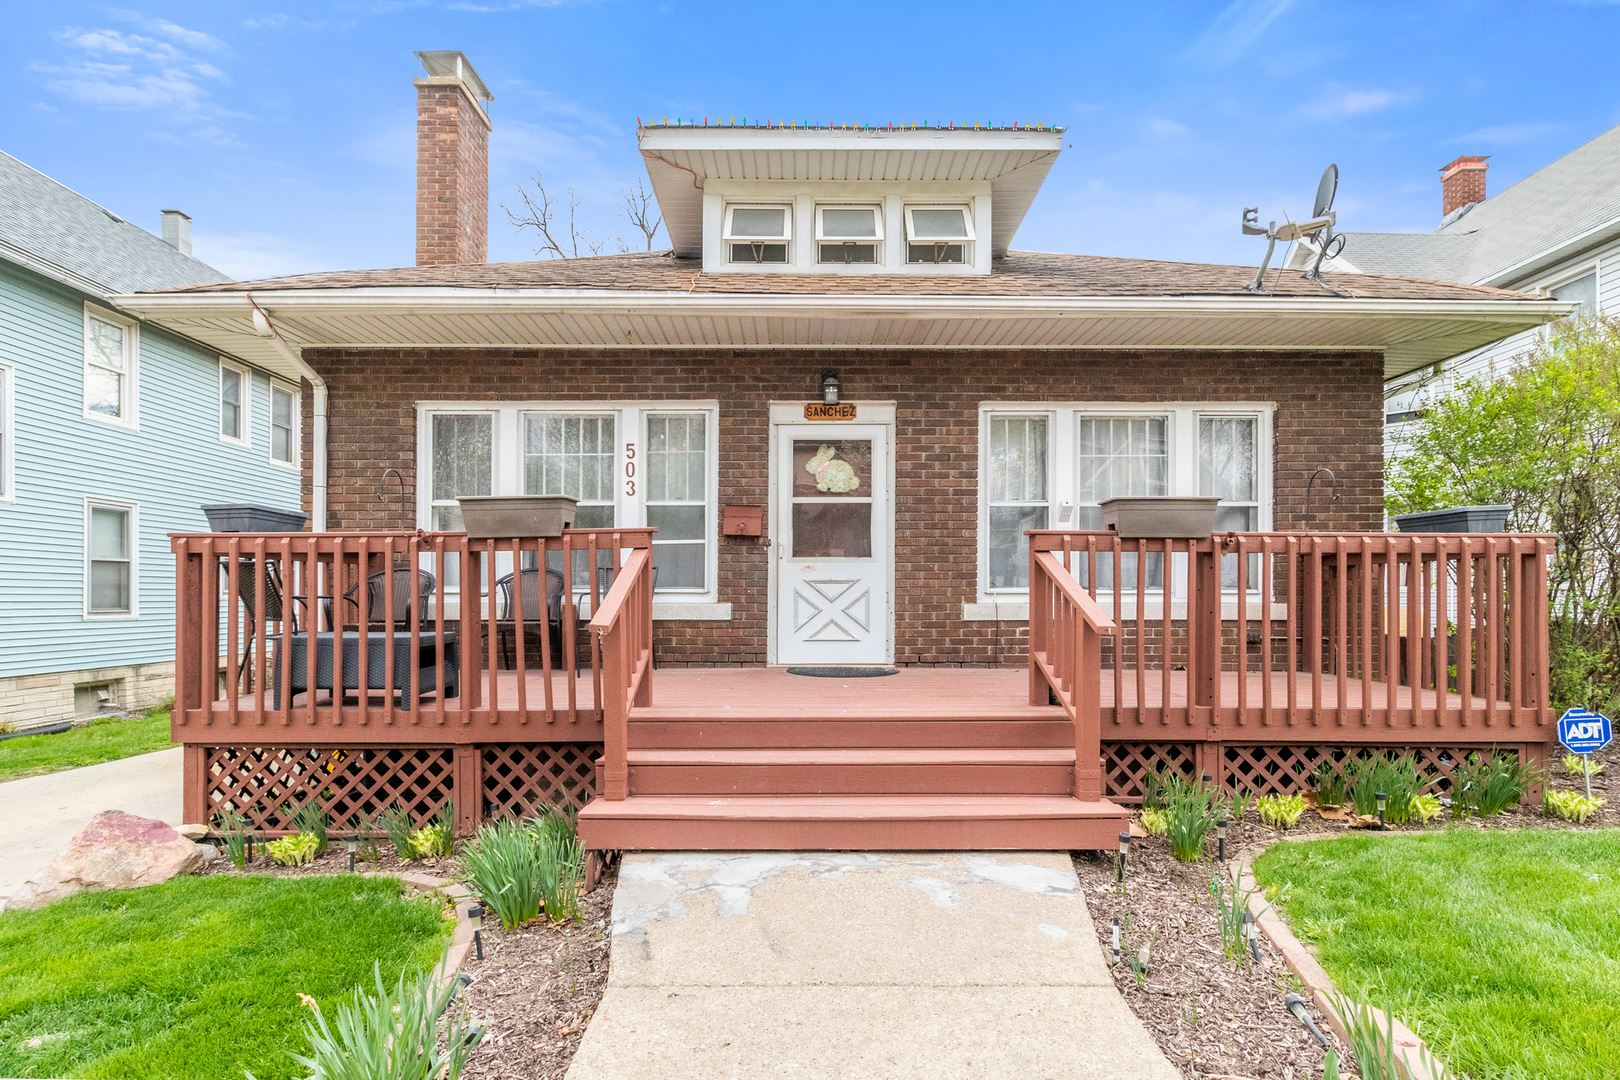 Photo of 503 High Street, Joliet, IL 60432 (MLS # 11061211)